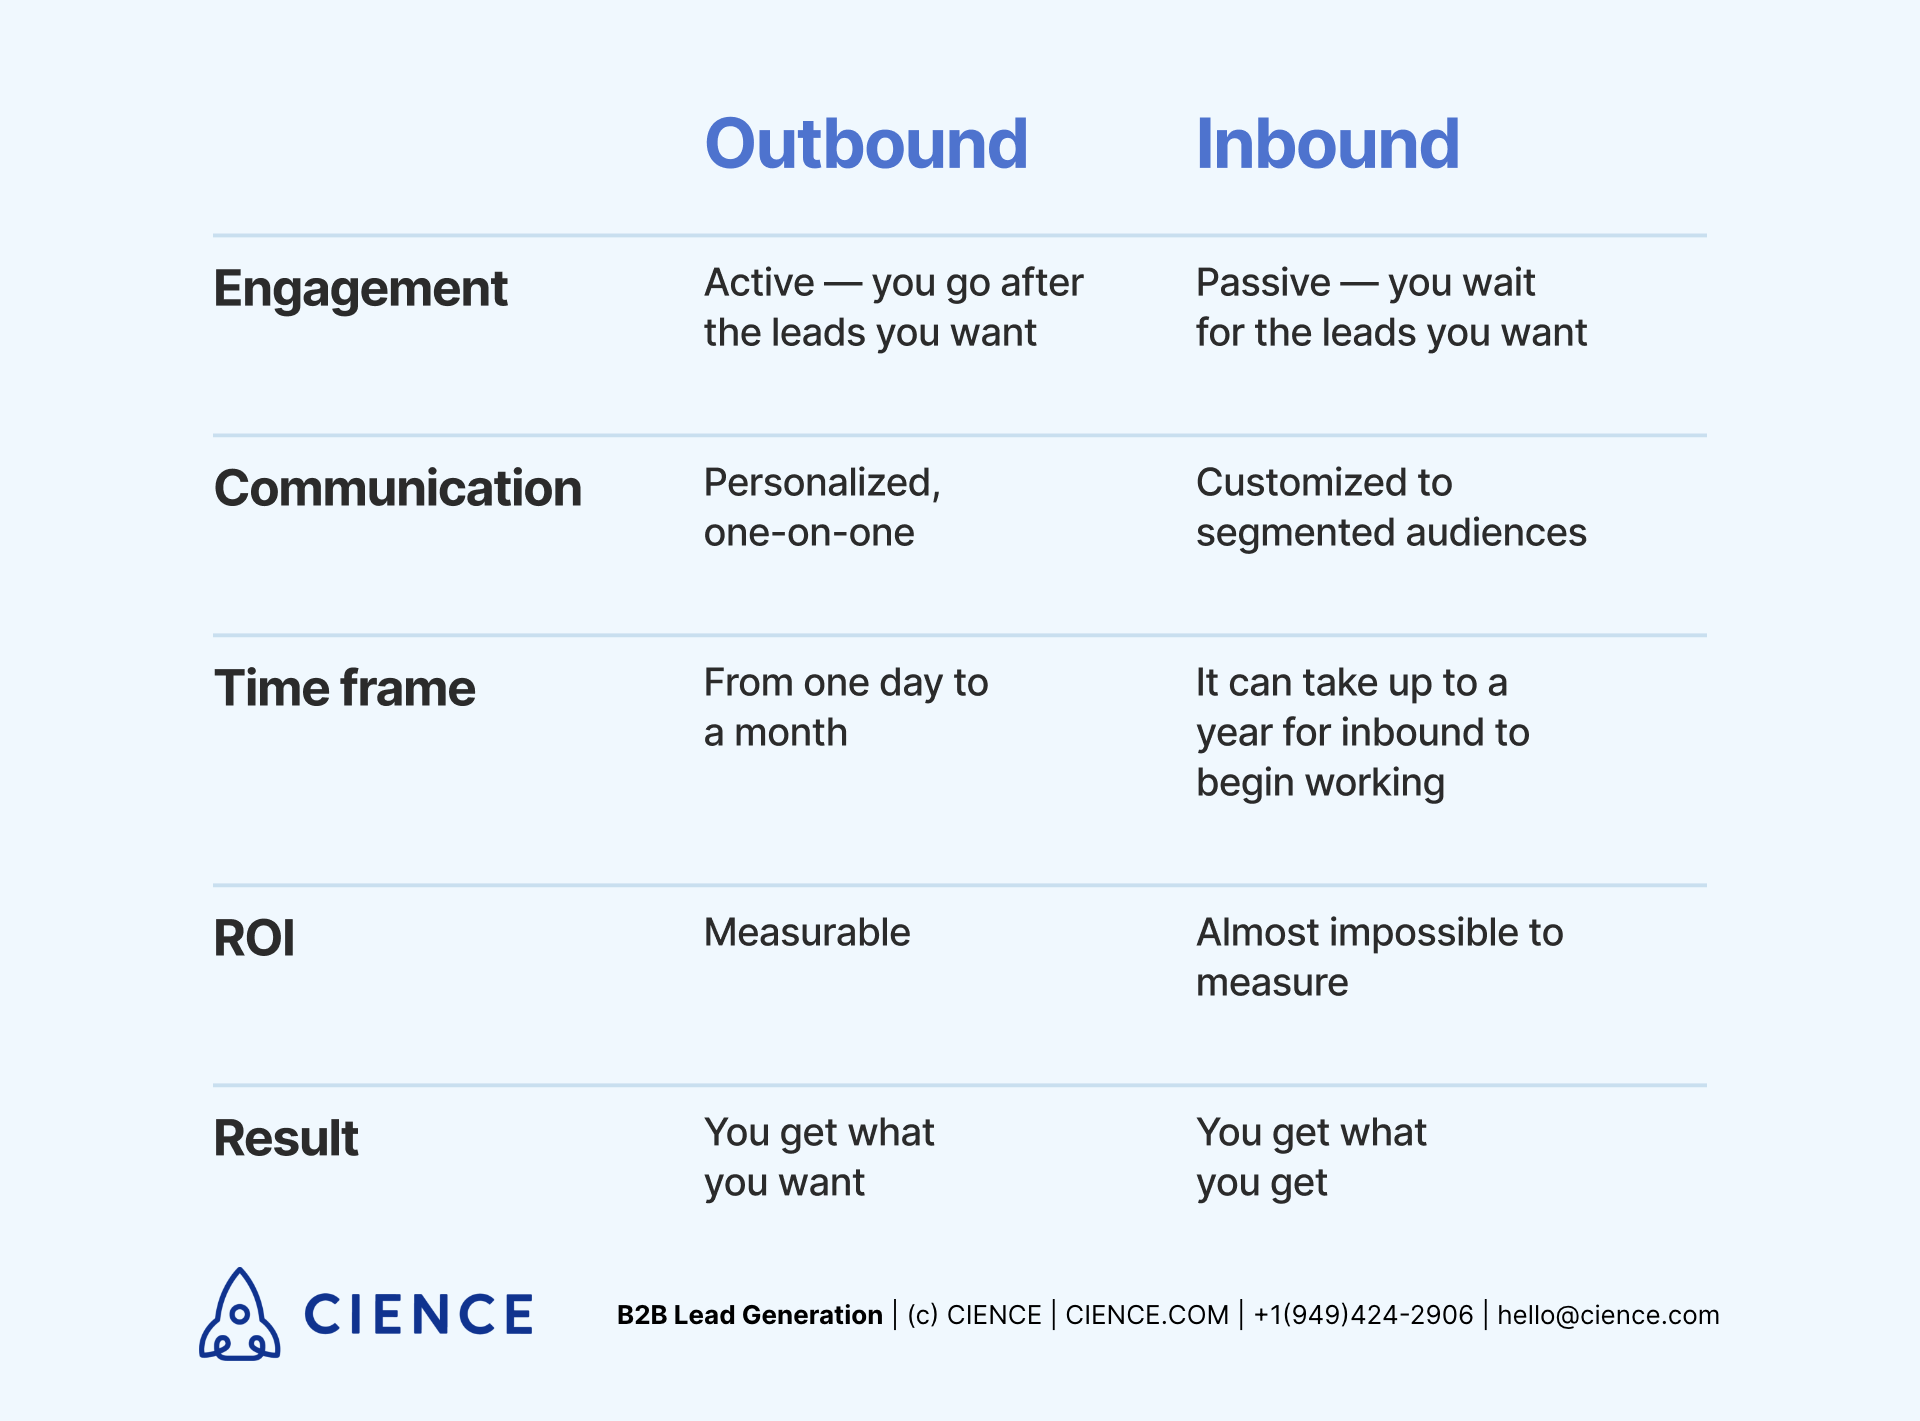 Differences between Inbound and Outbound Marketing